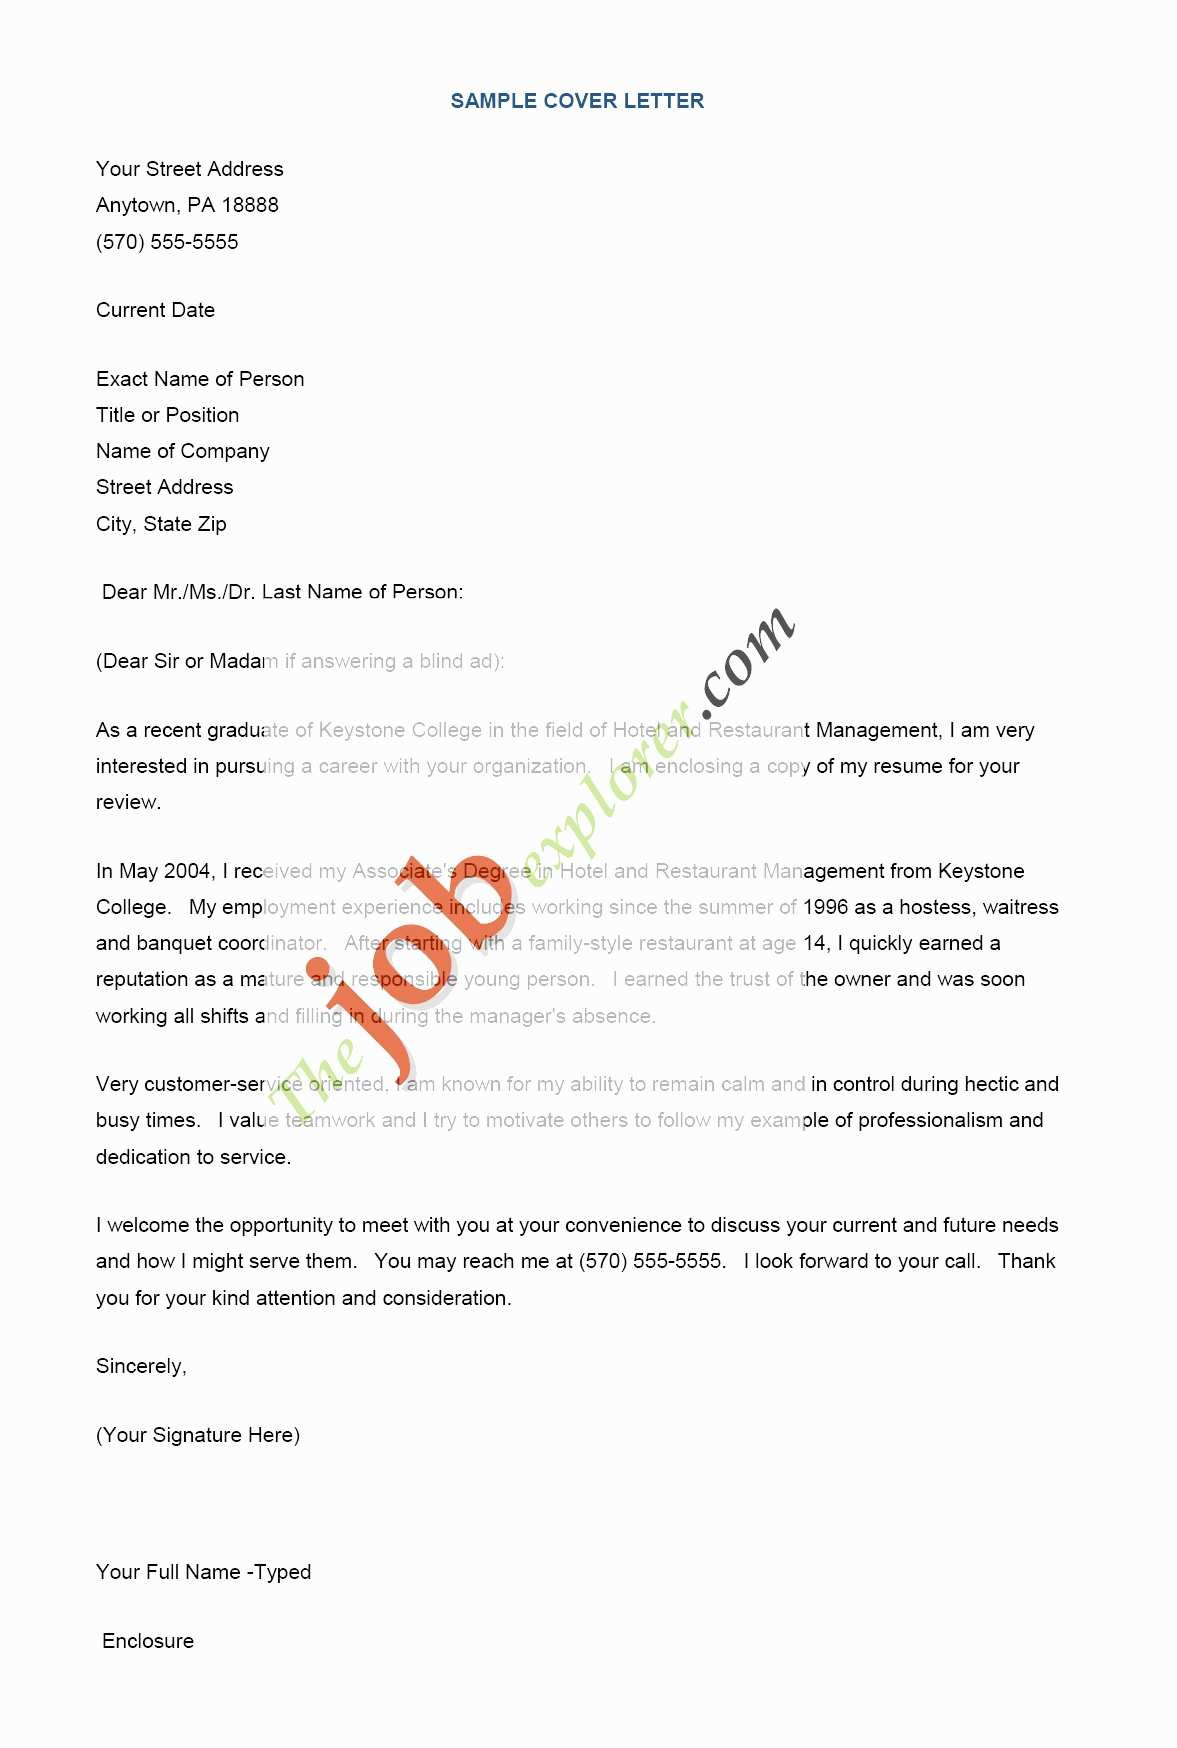 Sample Cover Letter Template - Unique Letter Template format